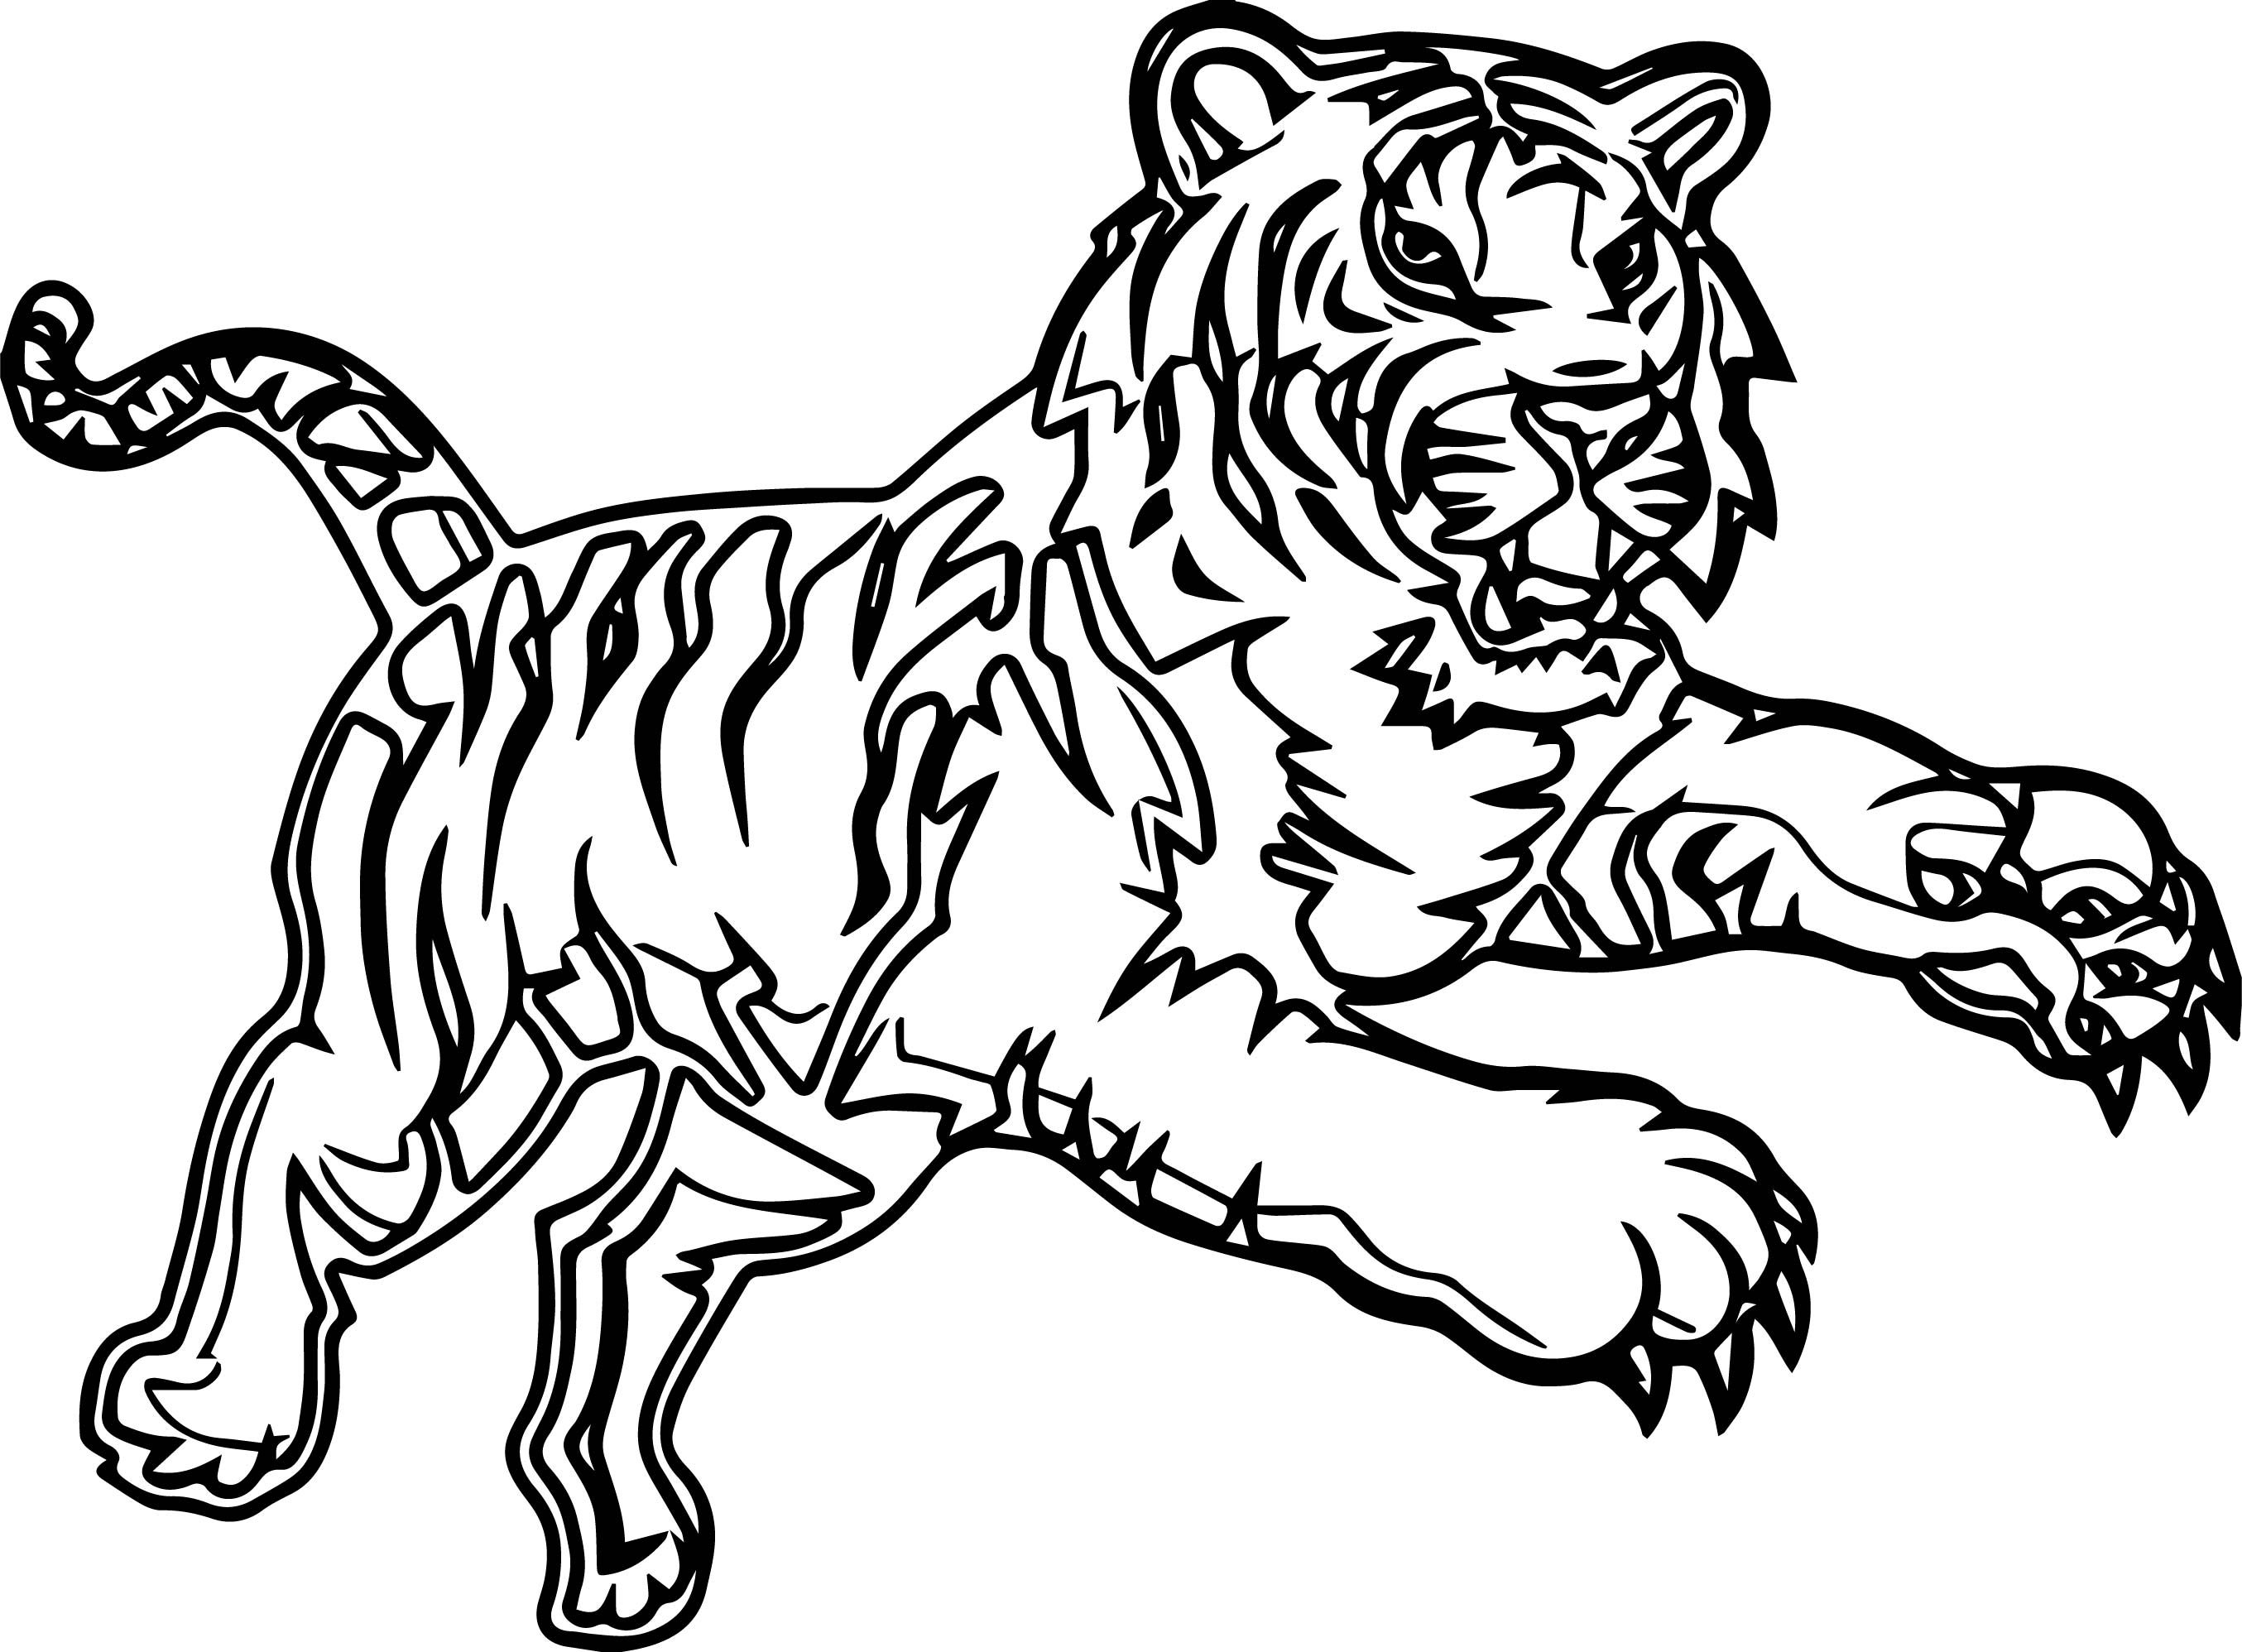 Attack Time Tiger Coloring Page